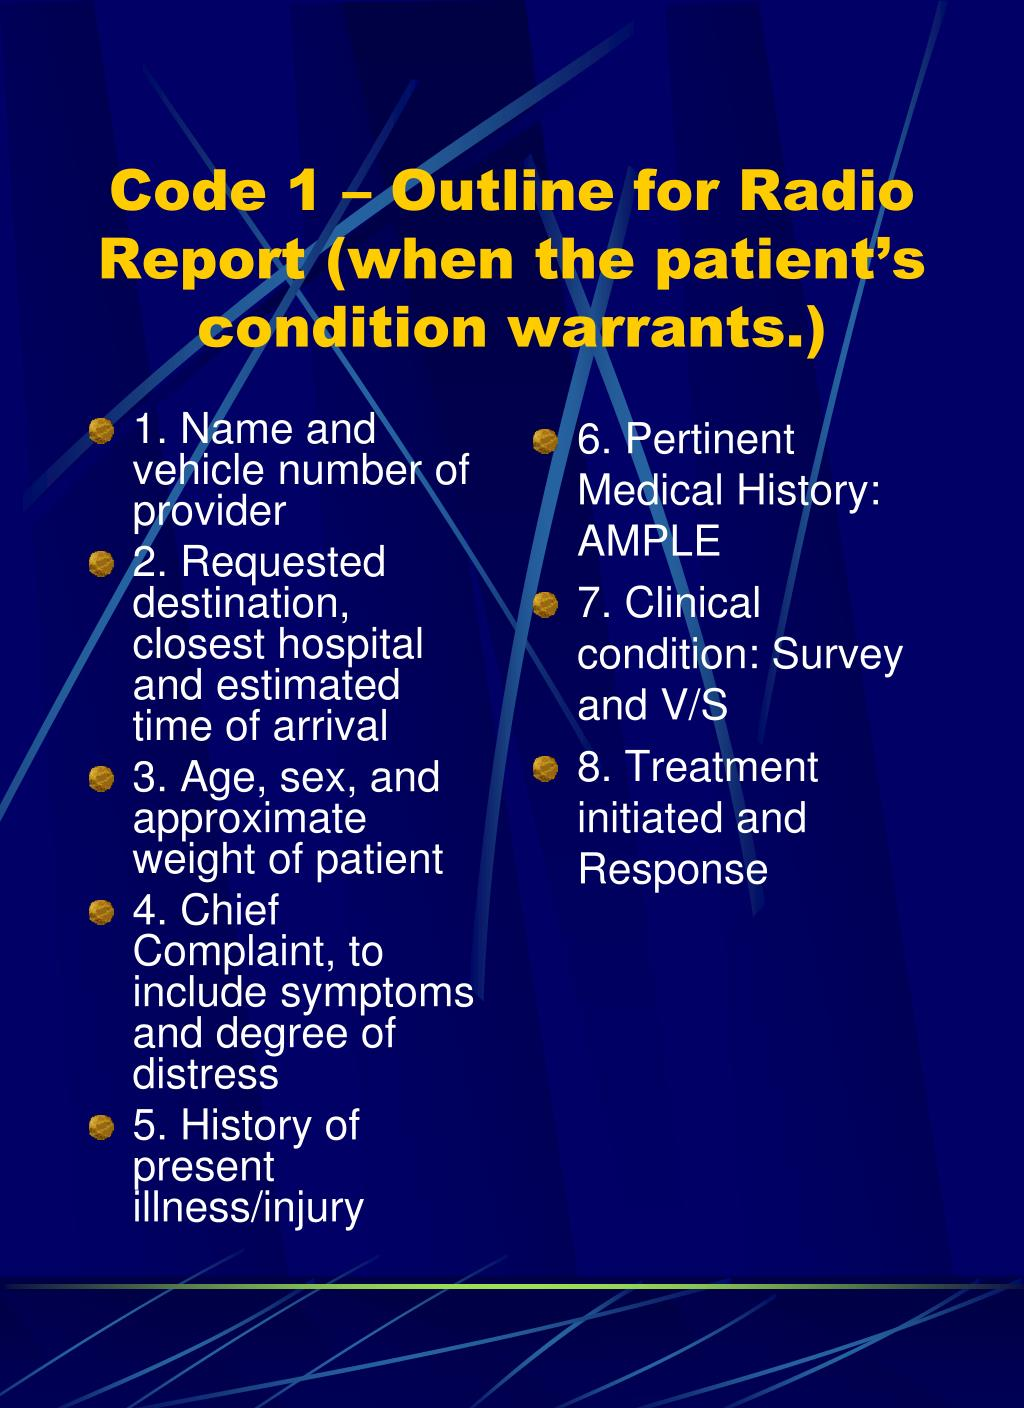 Code 1 – Outline for Radio Report (when the patient's condition warrants.)